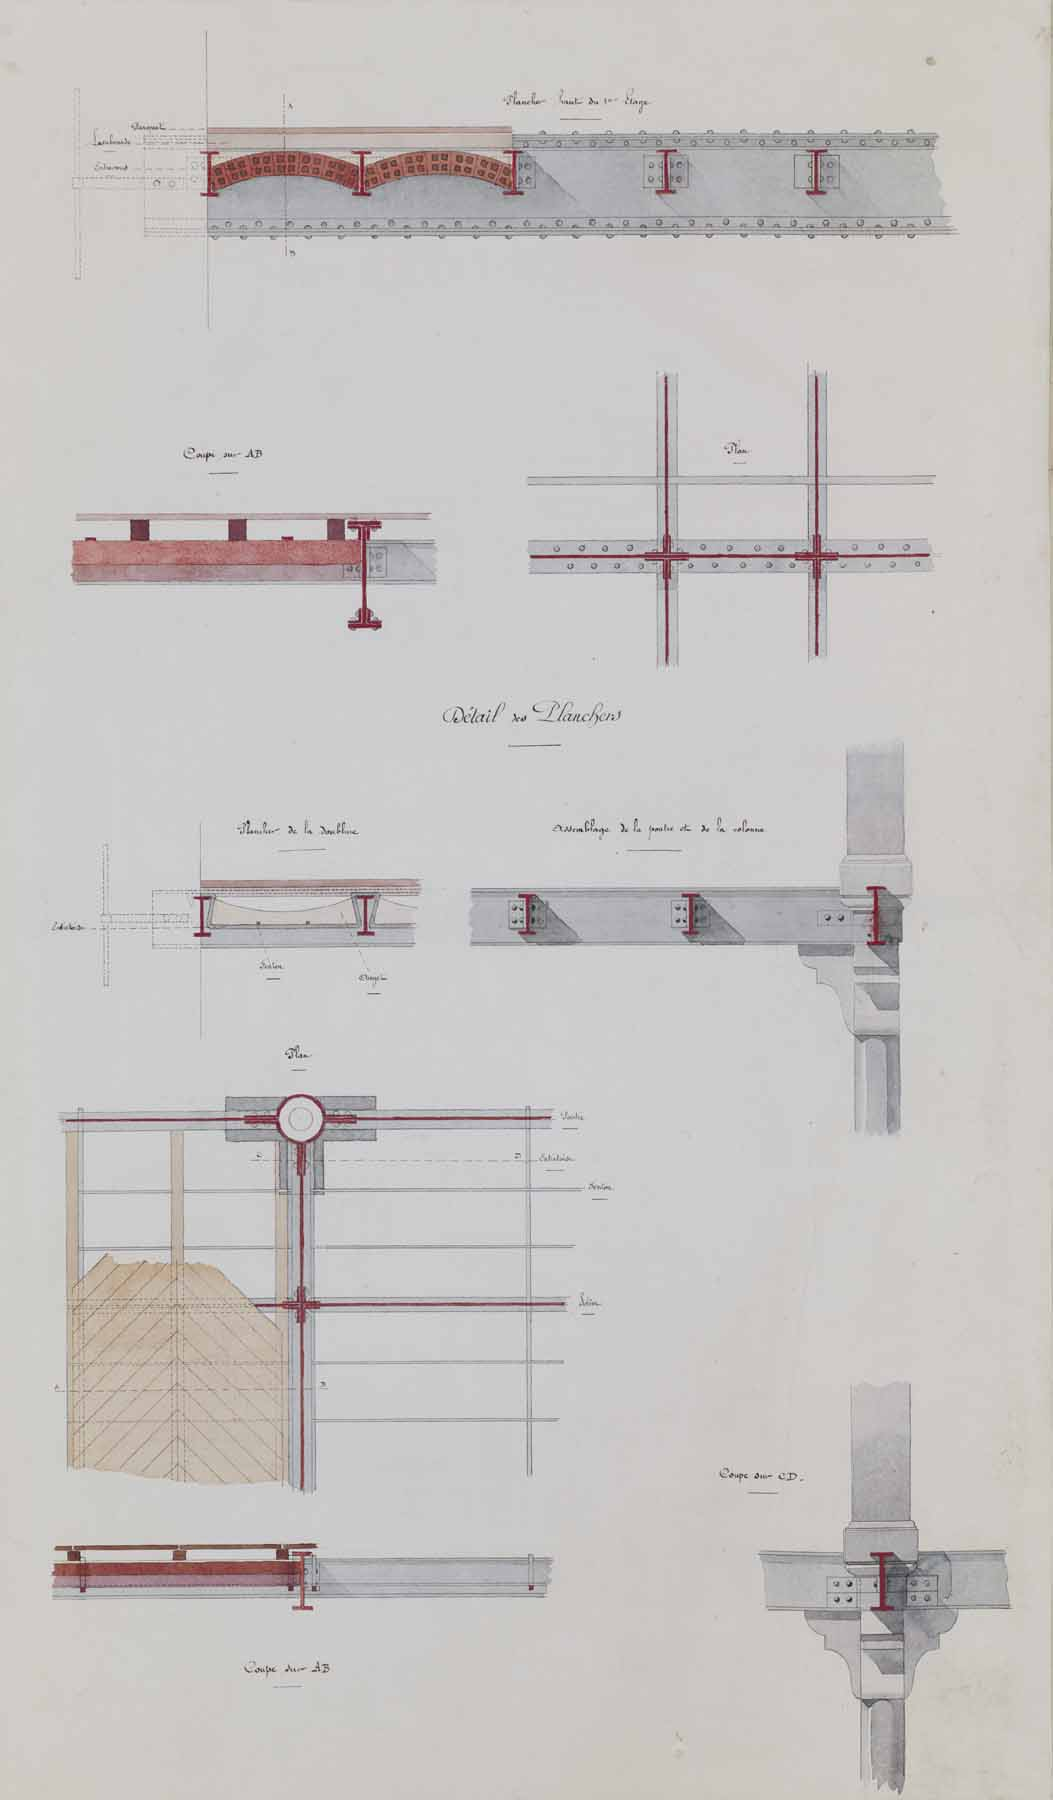 """Jules-Germain Olivier, Ironwork: Details of the Floors,  c. 1890-1900, ink and watercolor on paper,41 1/4 x 26 1/4"""" framed"""